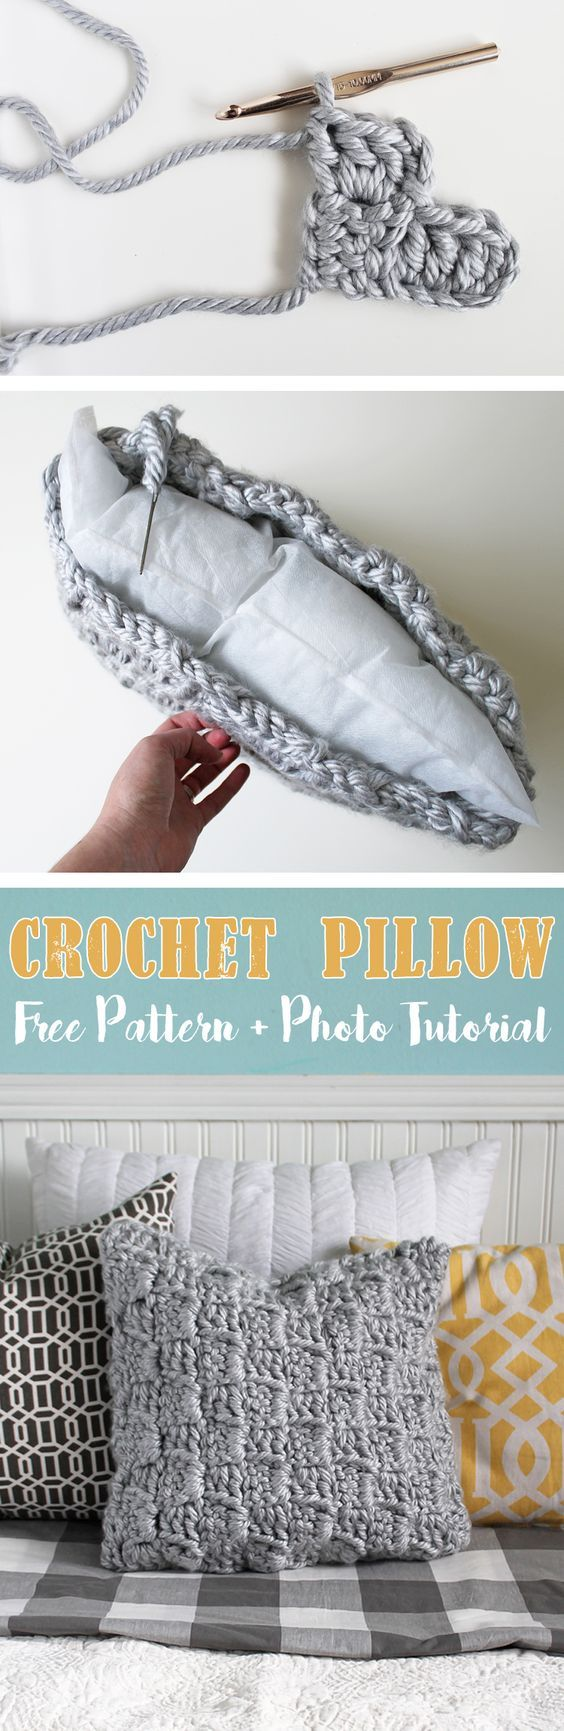 Make this cool chunky textured crochet pillow following a step-by-step photo tutorial. Free crochet pattern!: